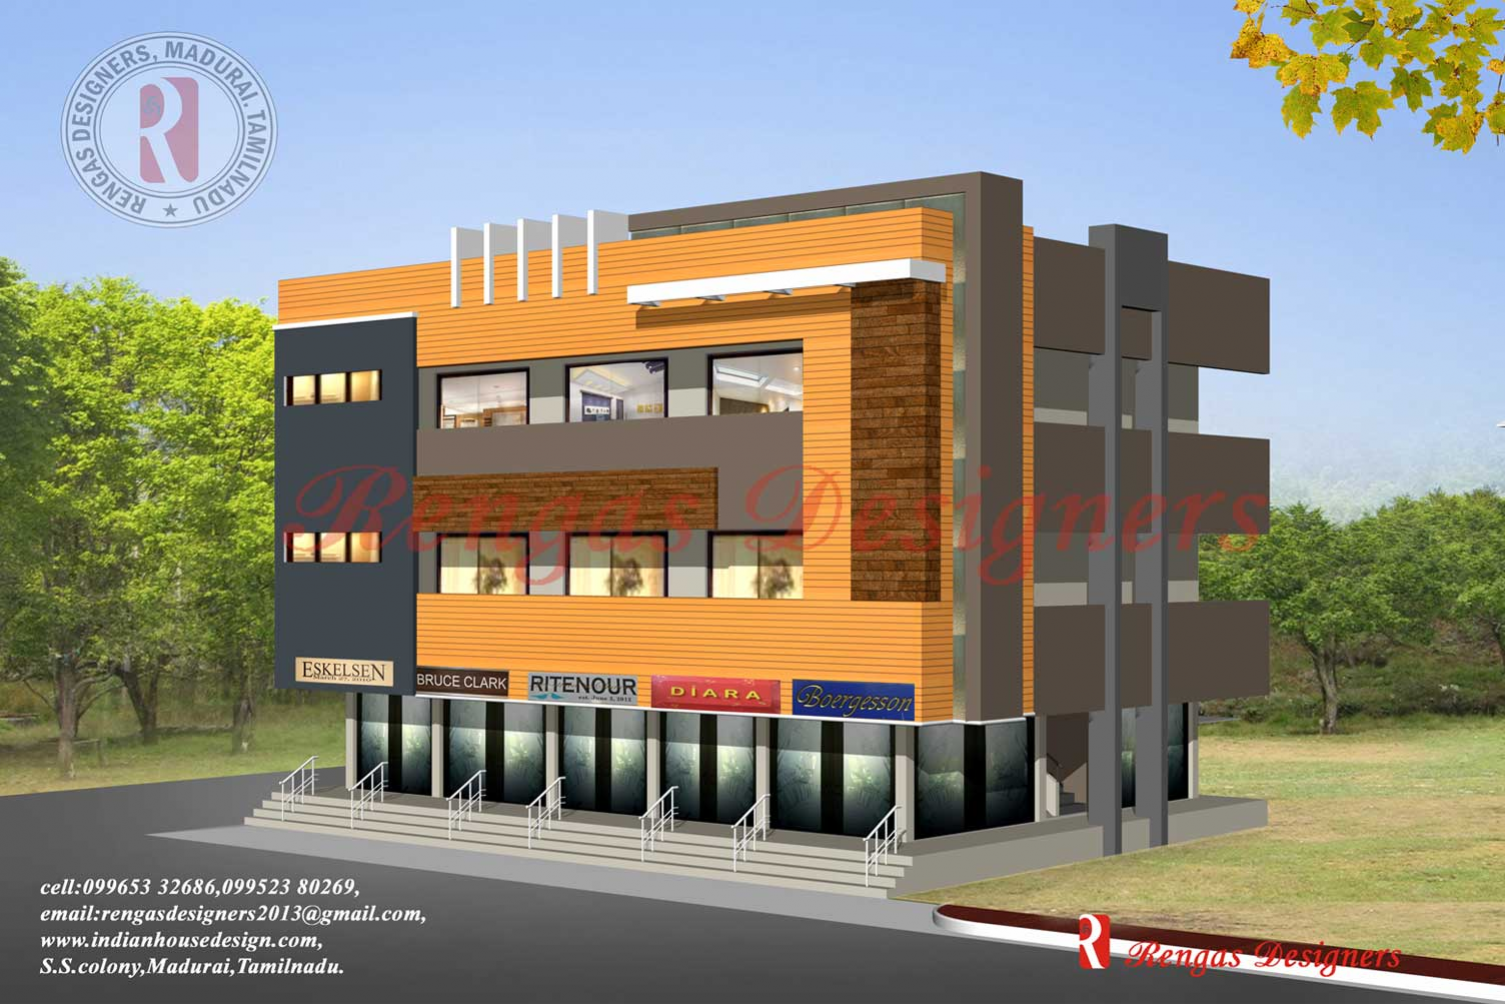 13 commercial building front design images commercial for Small commercial building design plans